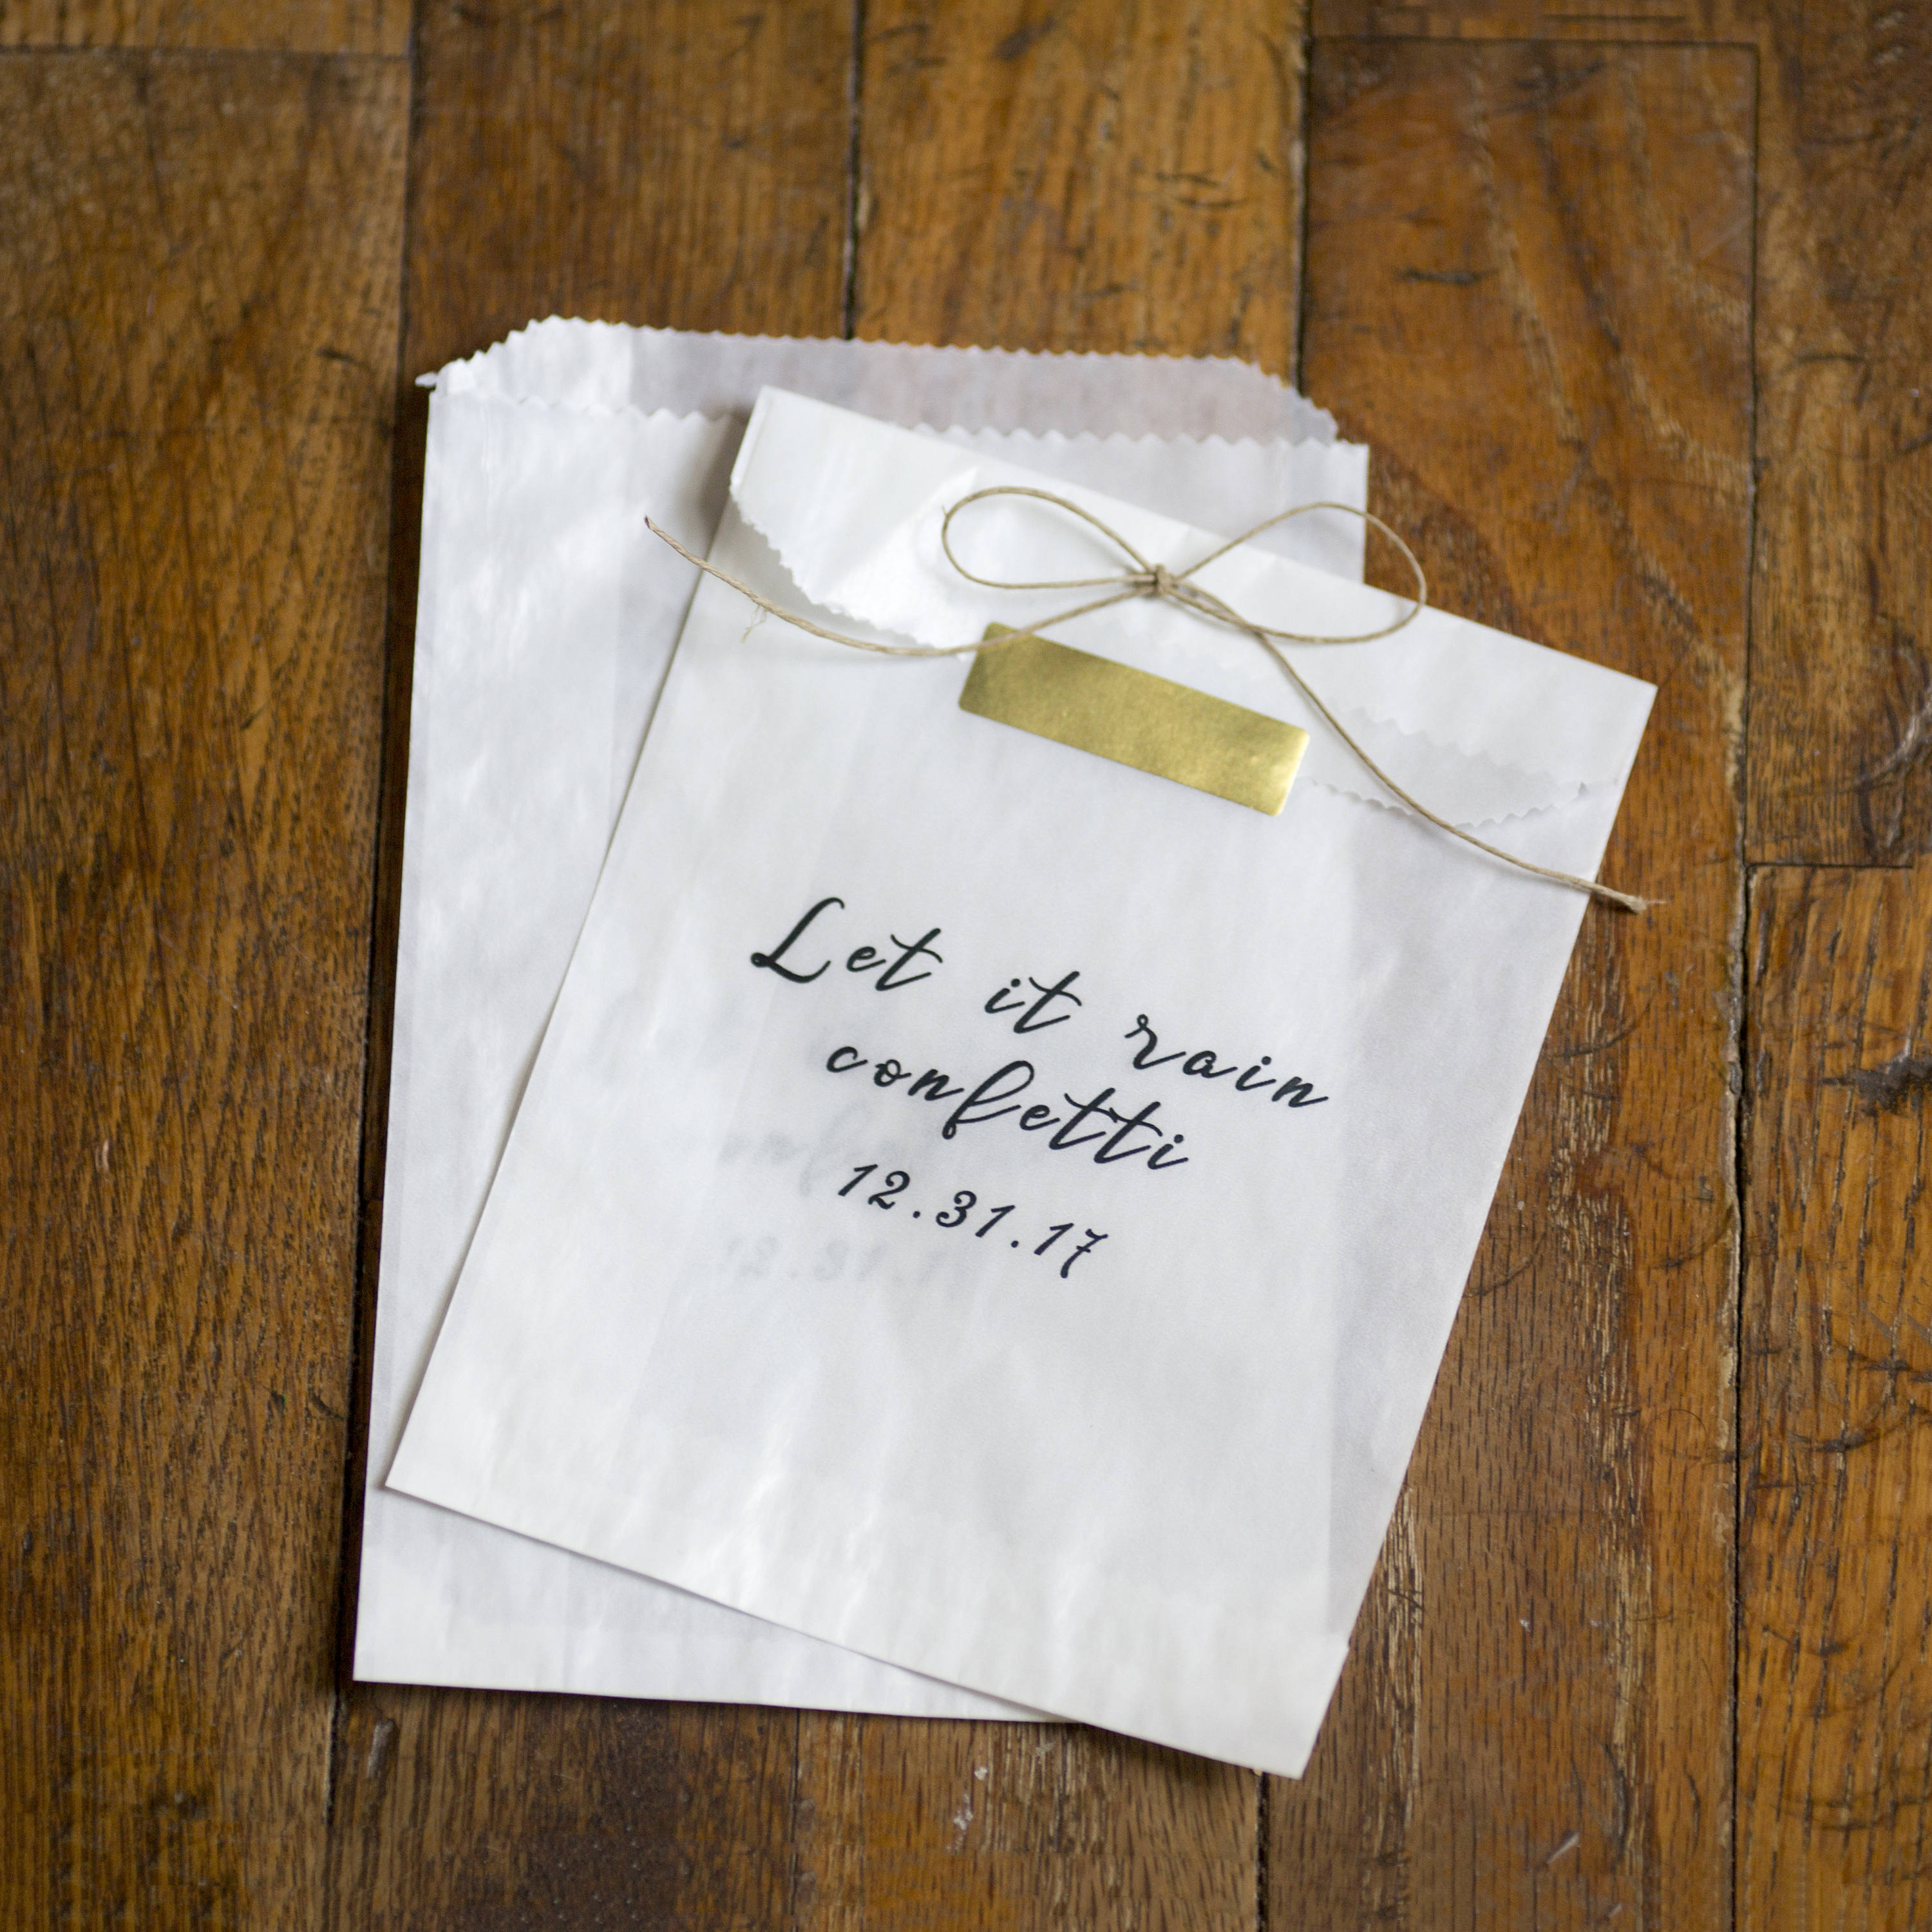 Let it Rain Confetti - Glassine Bags - size 4 3/4 x 6 3/4 inches ...